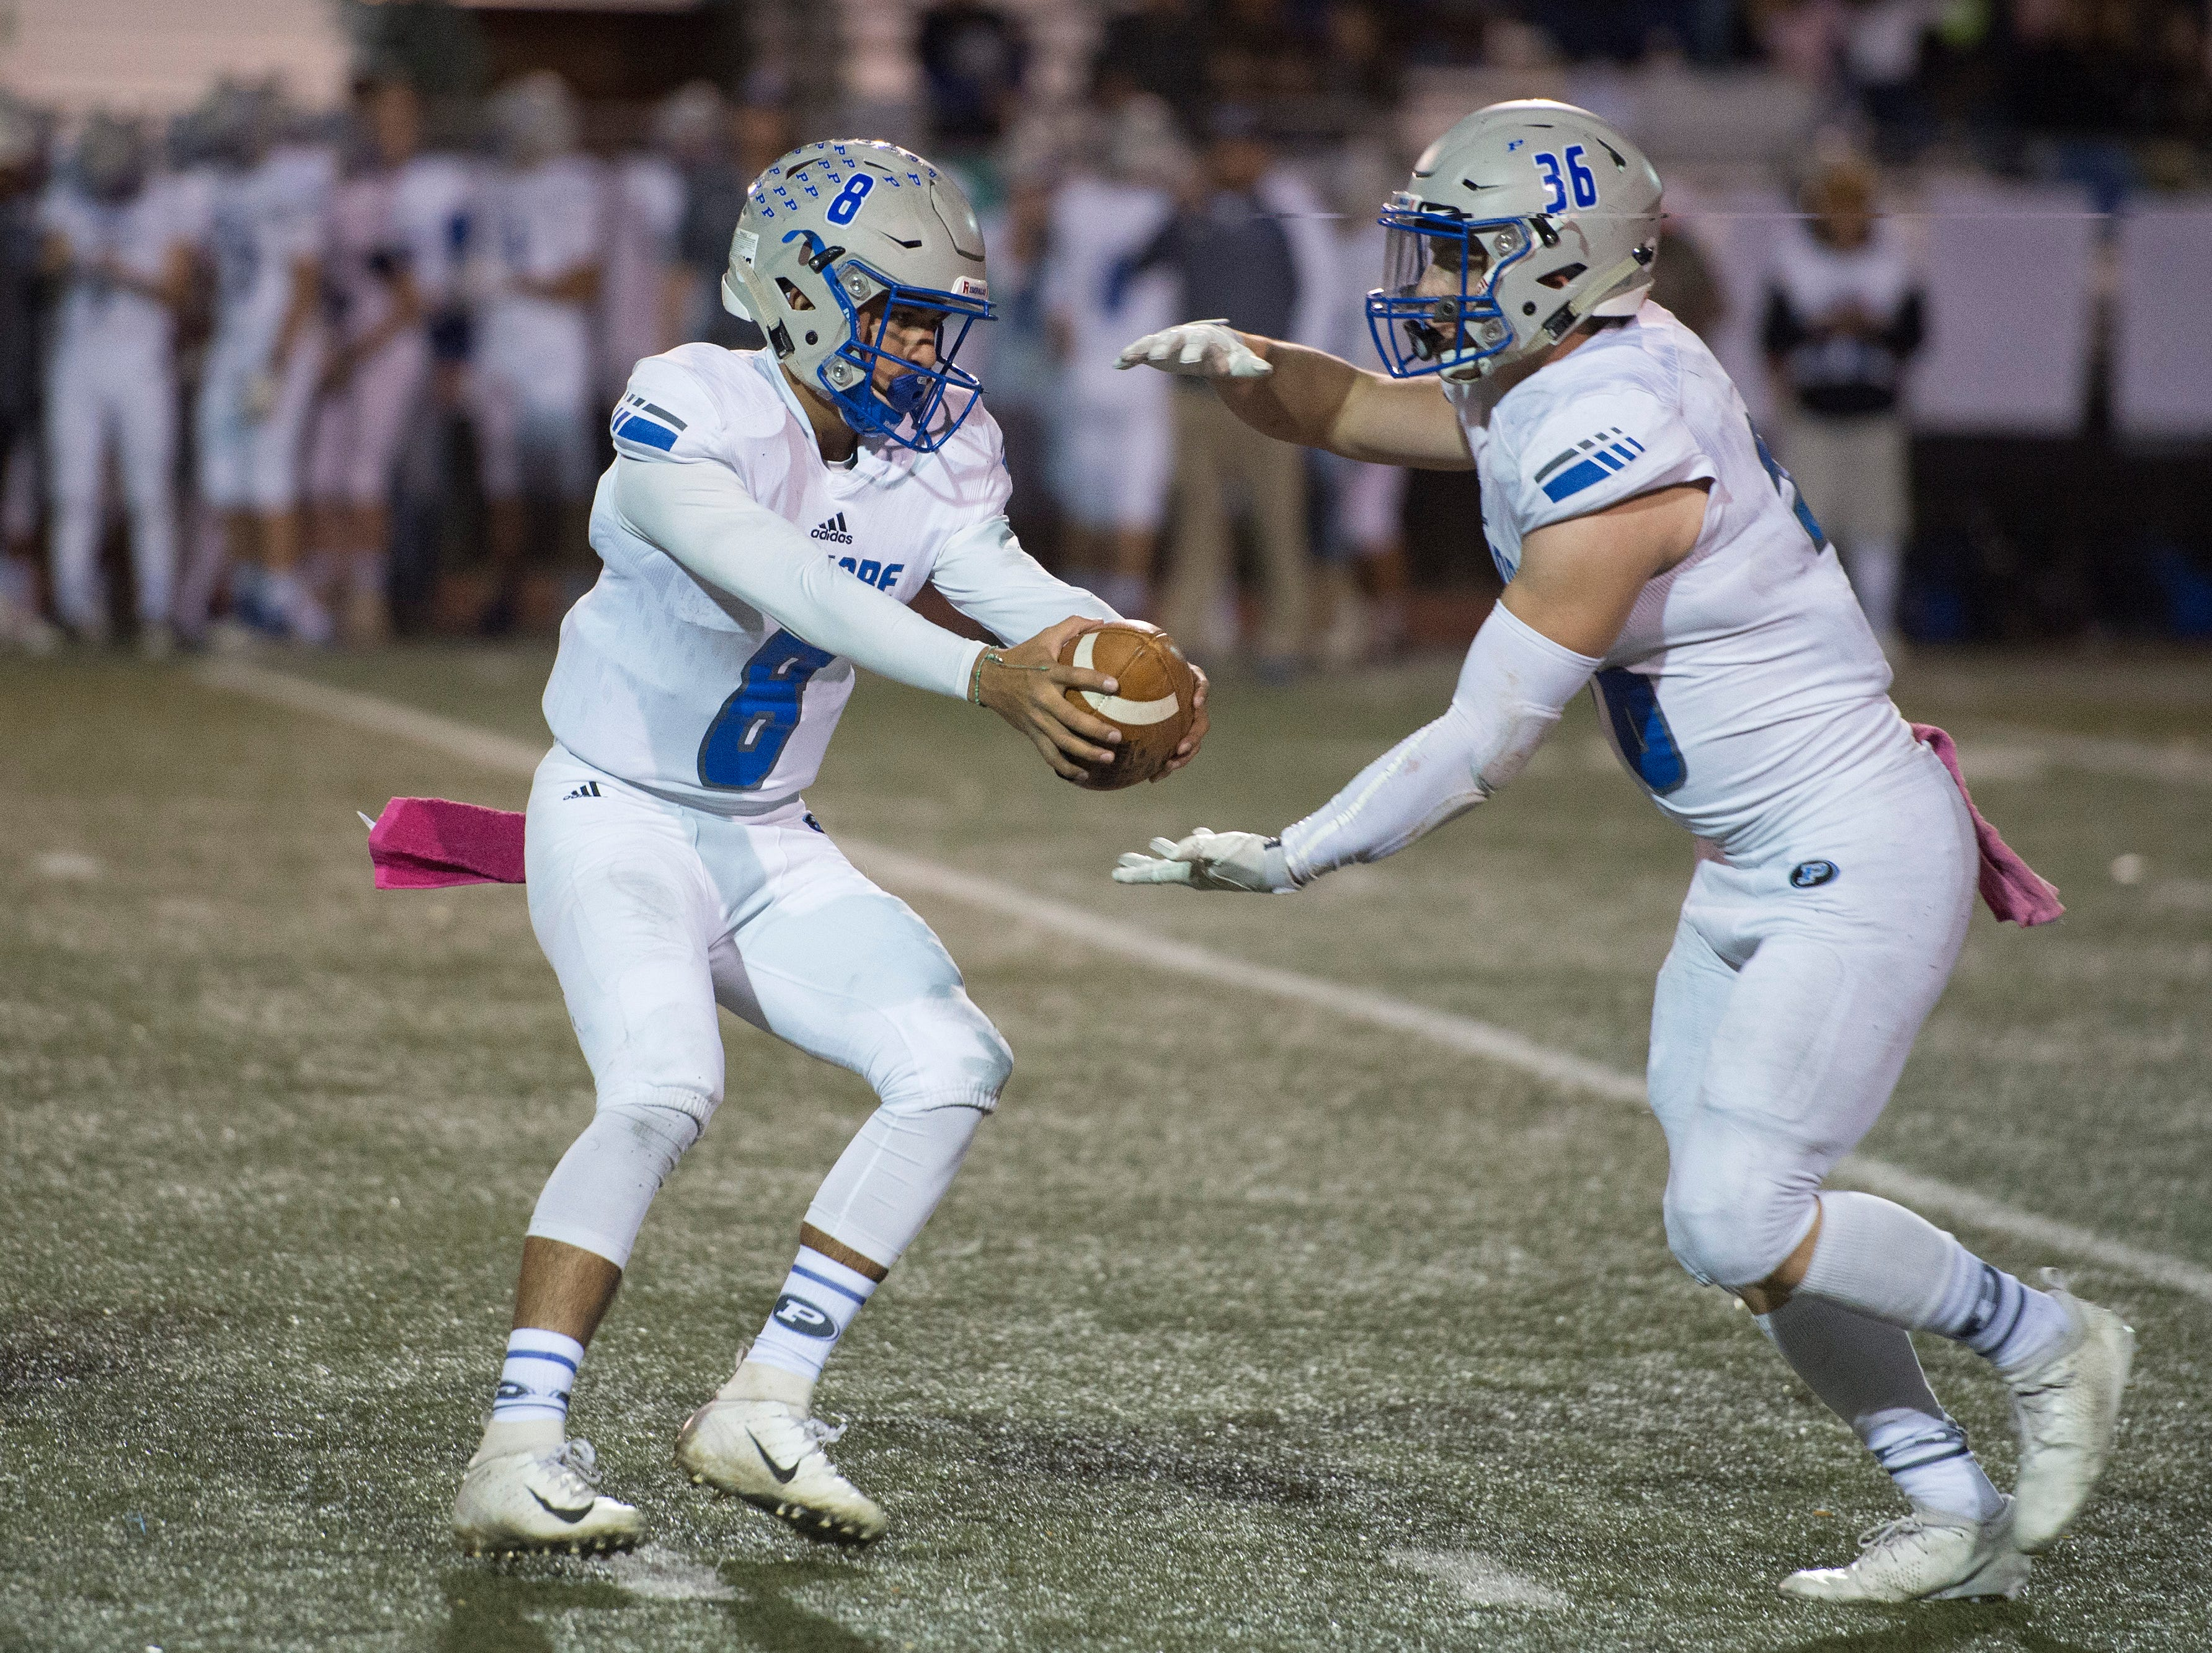 Poudre quarterback Sergio Tarango fakes a hand-off to running back Tate Satterfield during a game against Fossil Ridge at French Field on Friday, October 26, 2018.